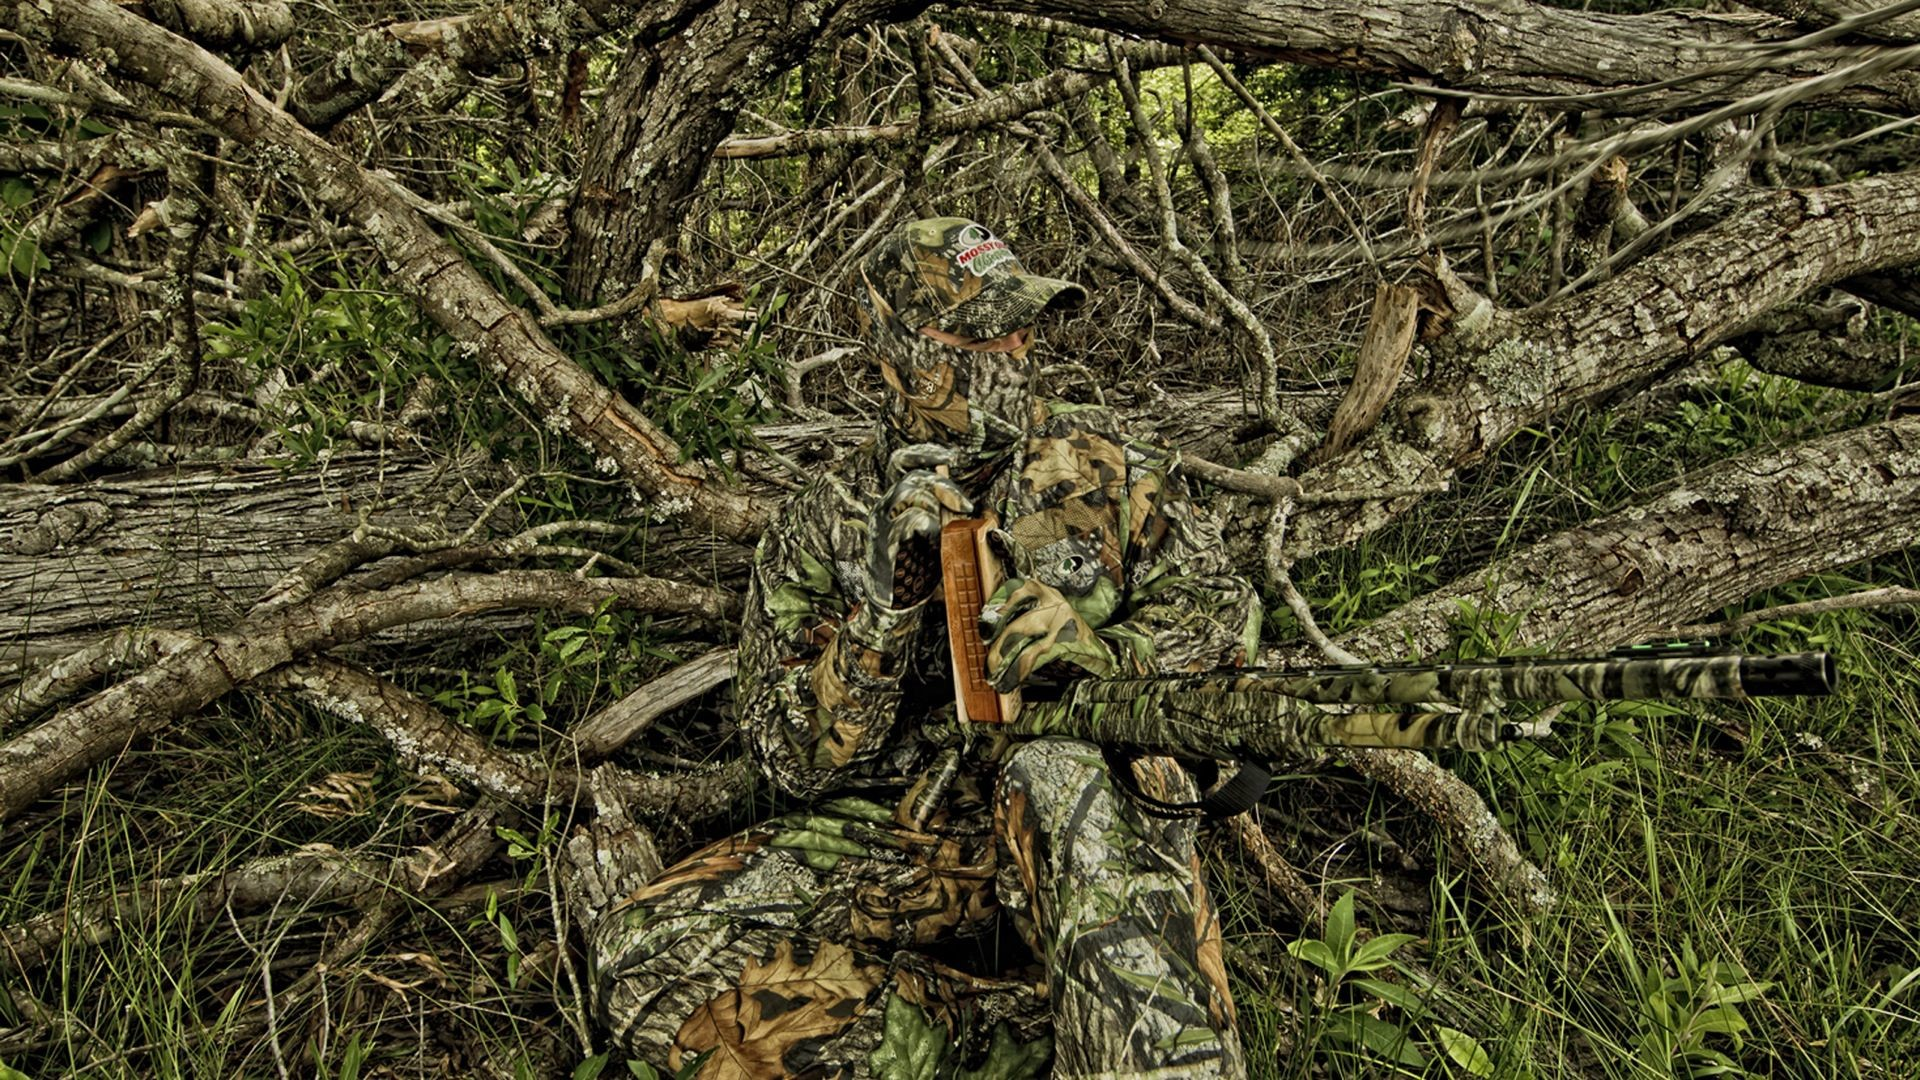 Green Paint For Deer Stands